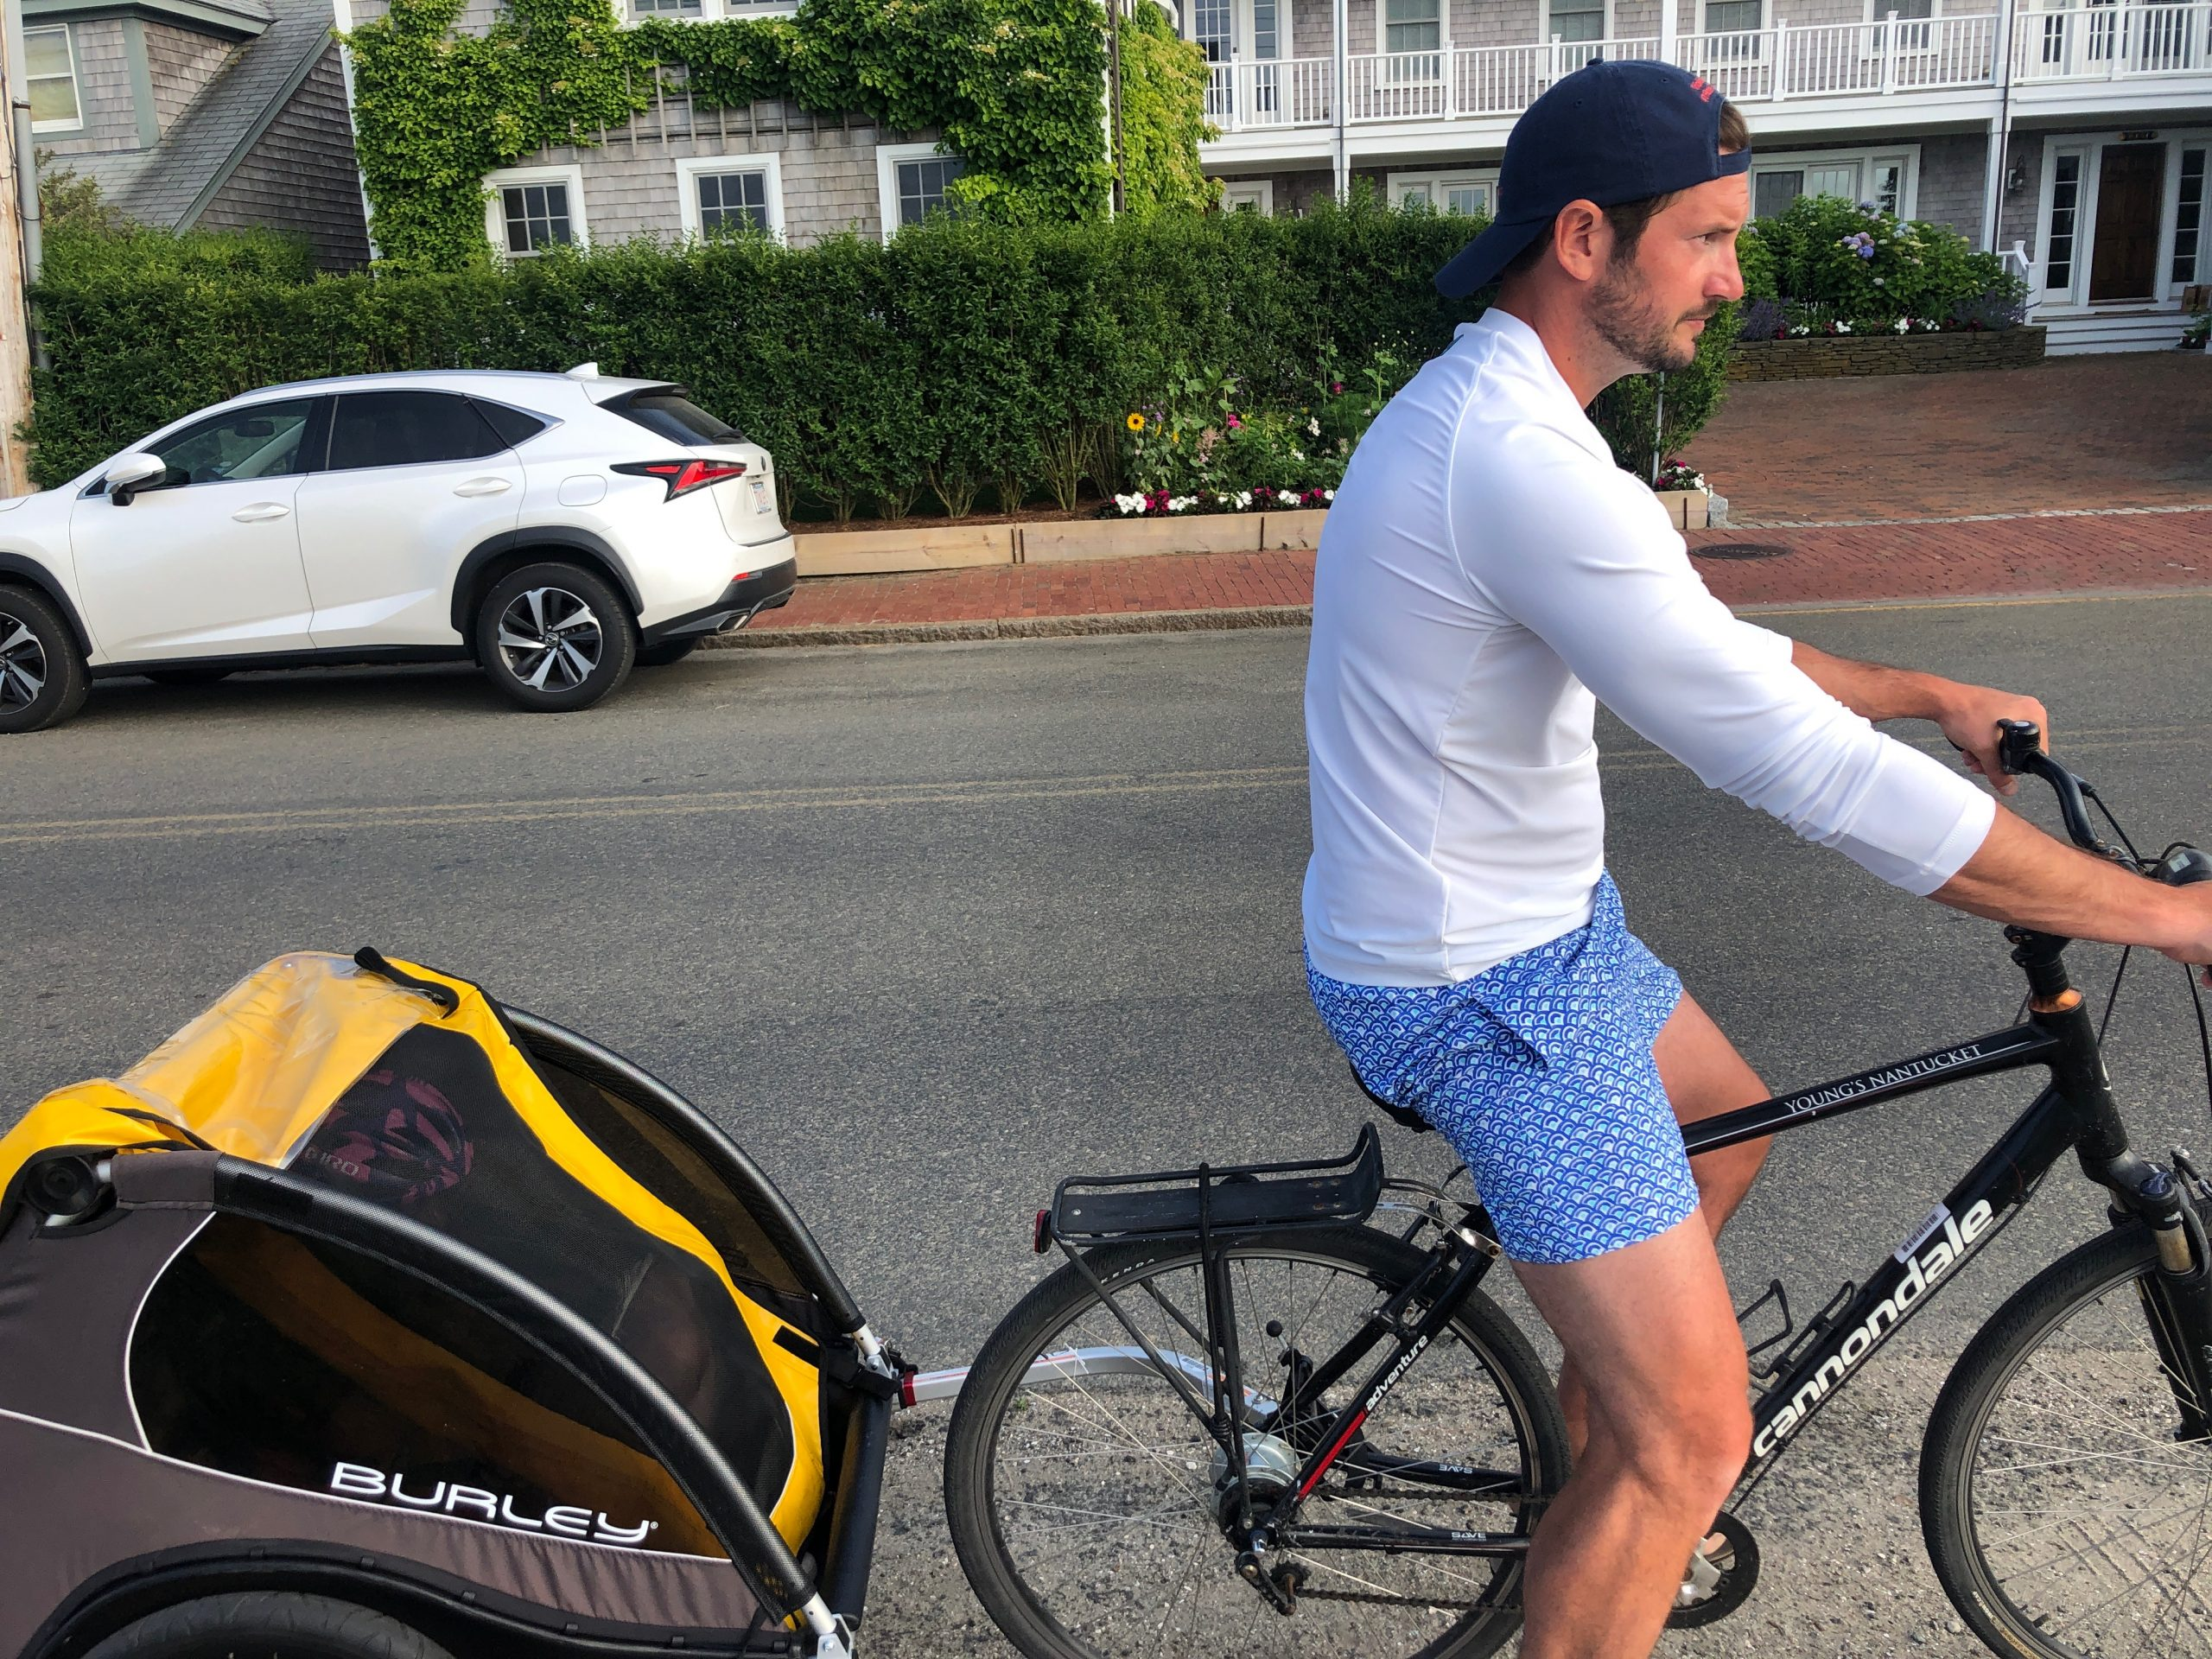 man riding bike with burley cub attached in nantucket